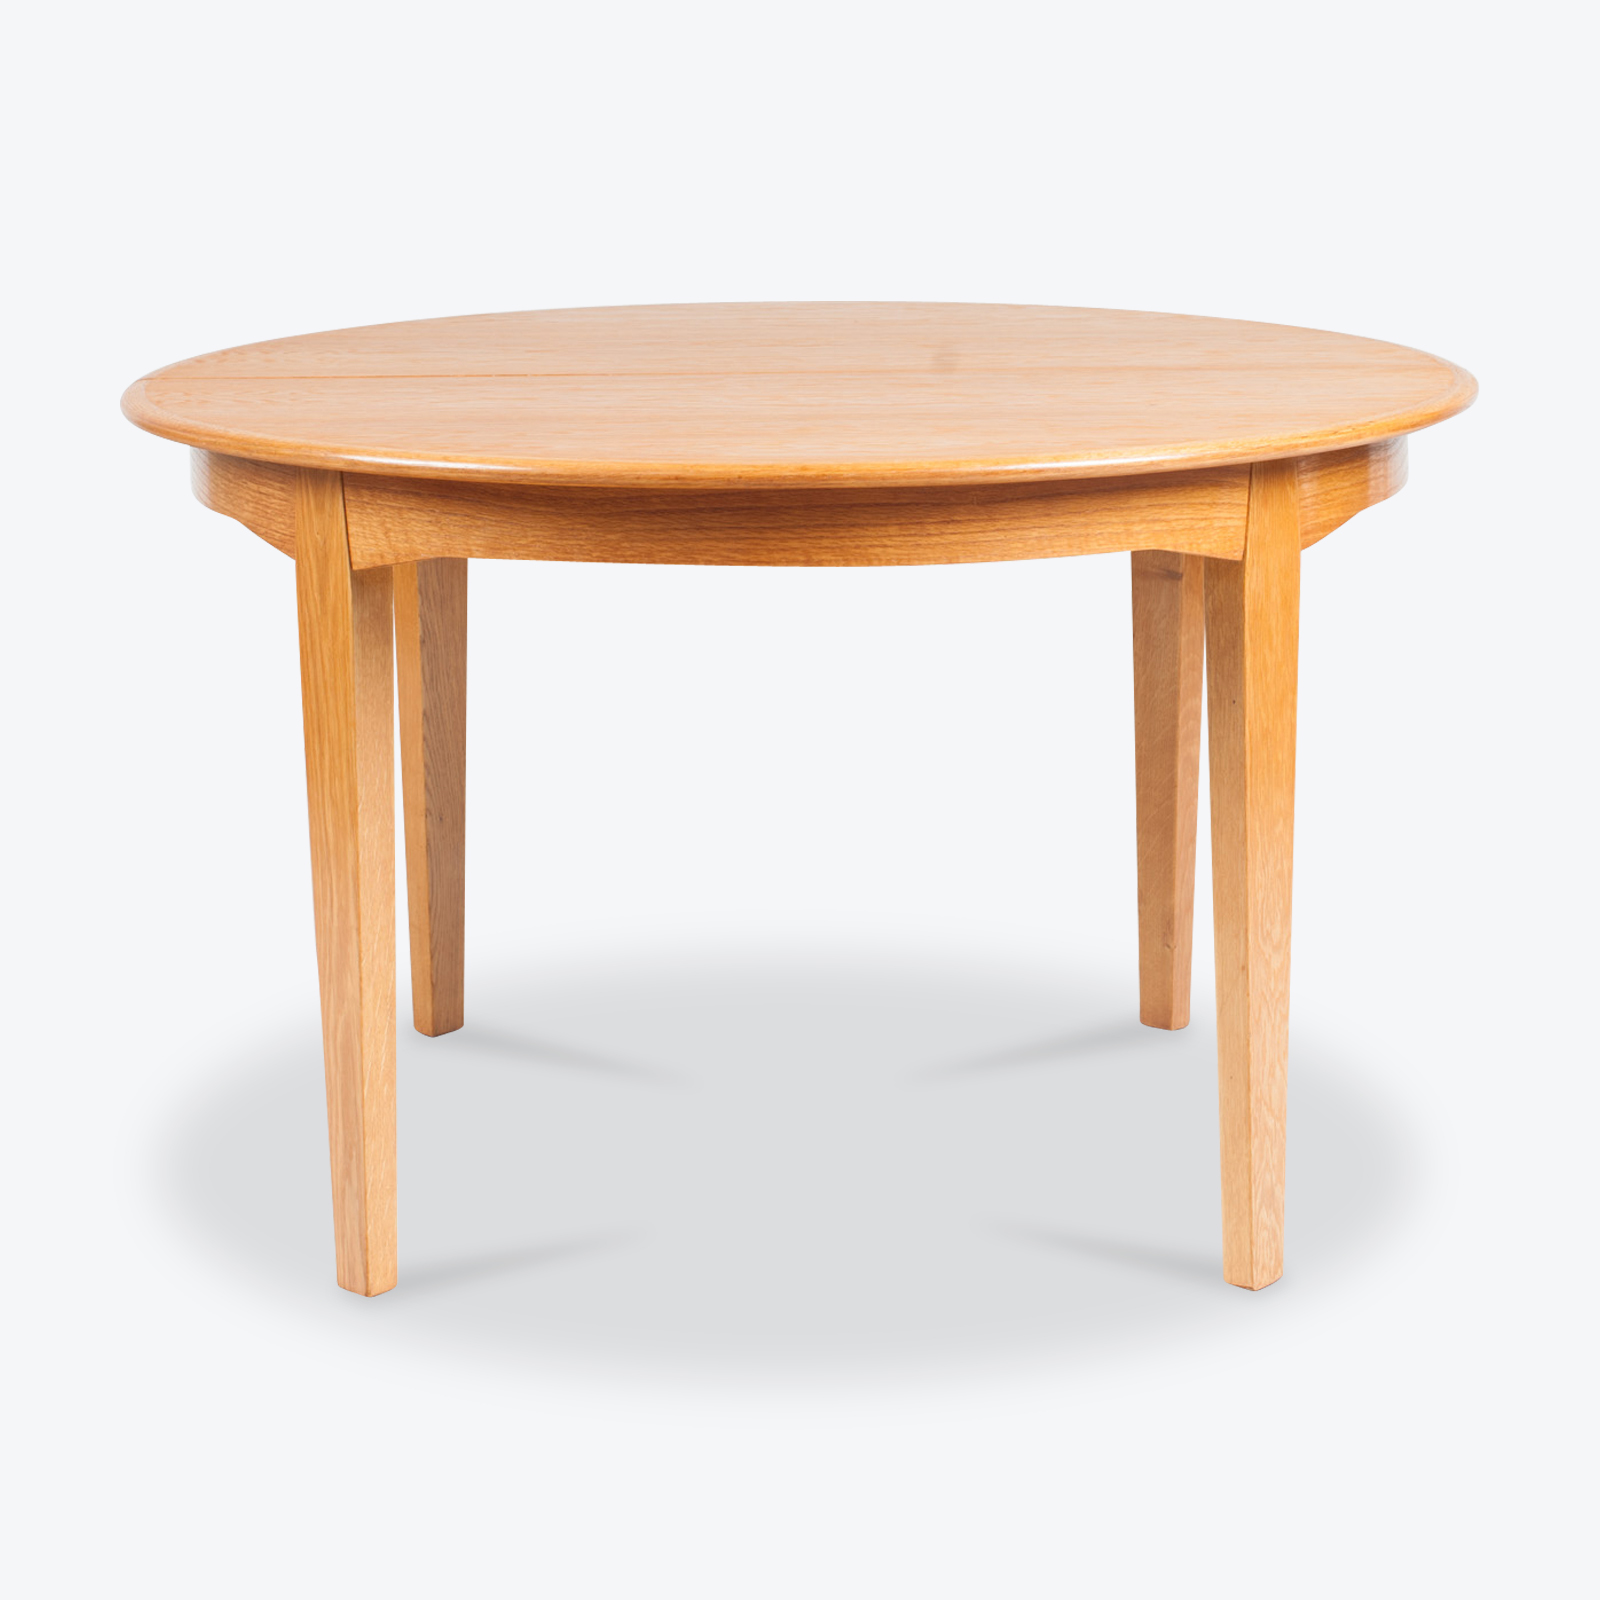 Round Dining Table In Oak 1960s Denmark 00.jpg